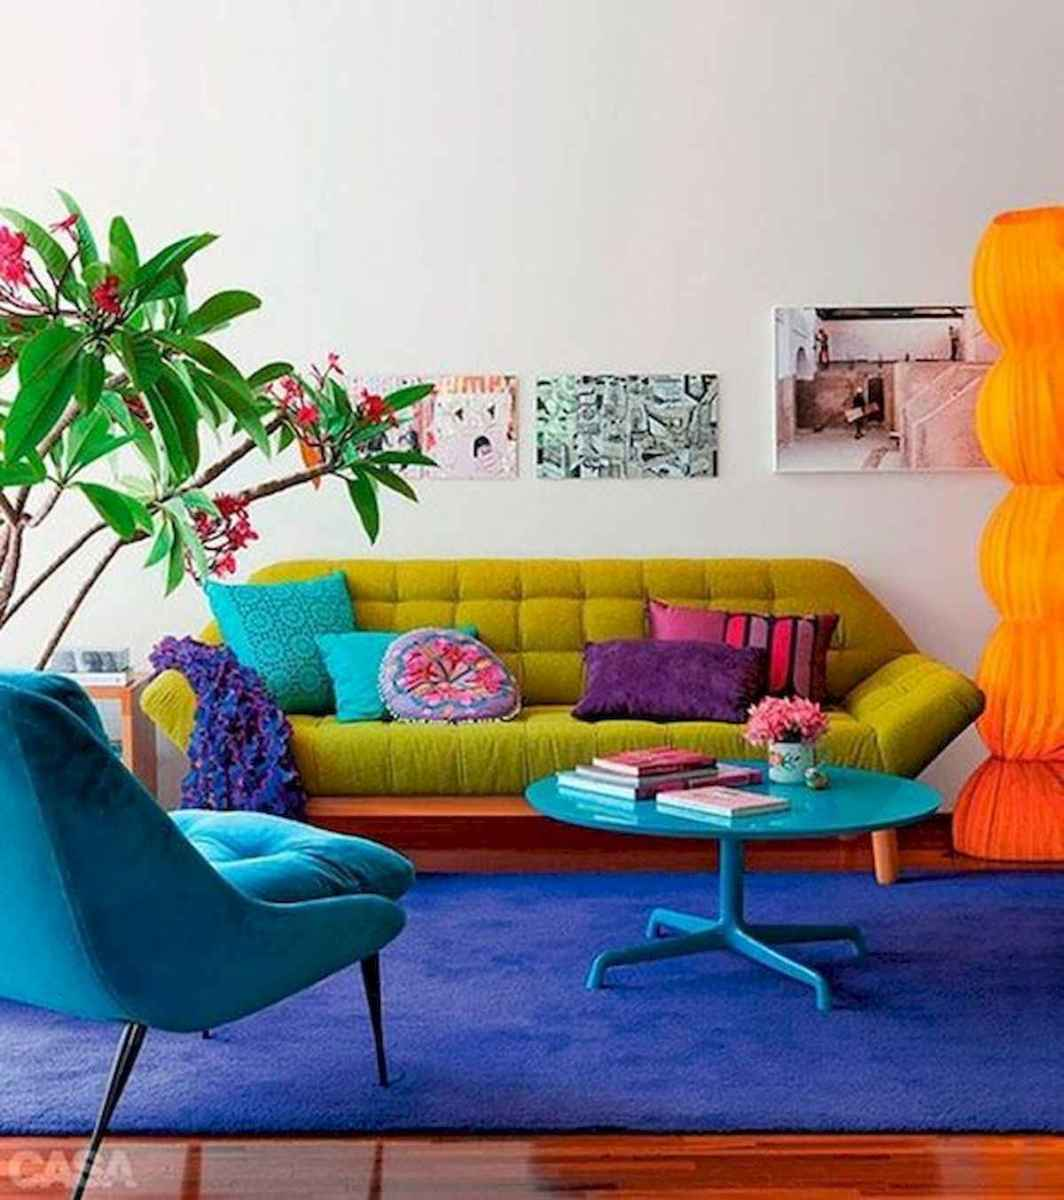 80+ Stunning Colorful Living Room Decor Ideas And Remodel for Summer Project (20)